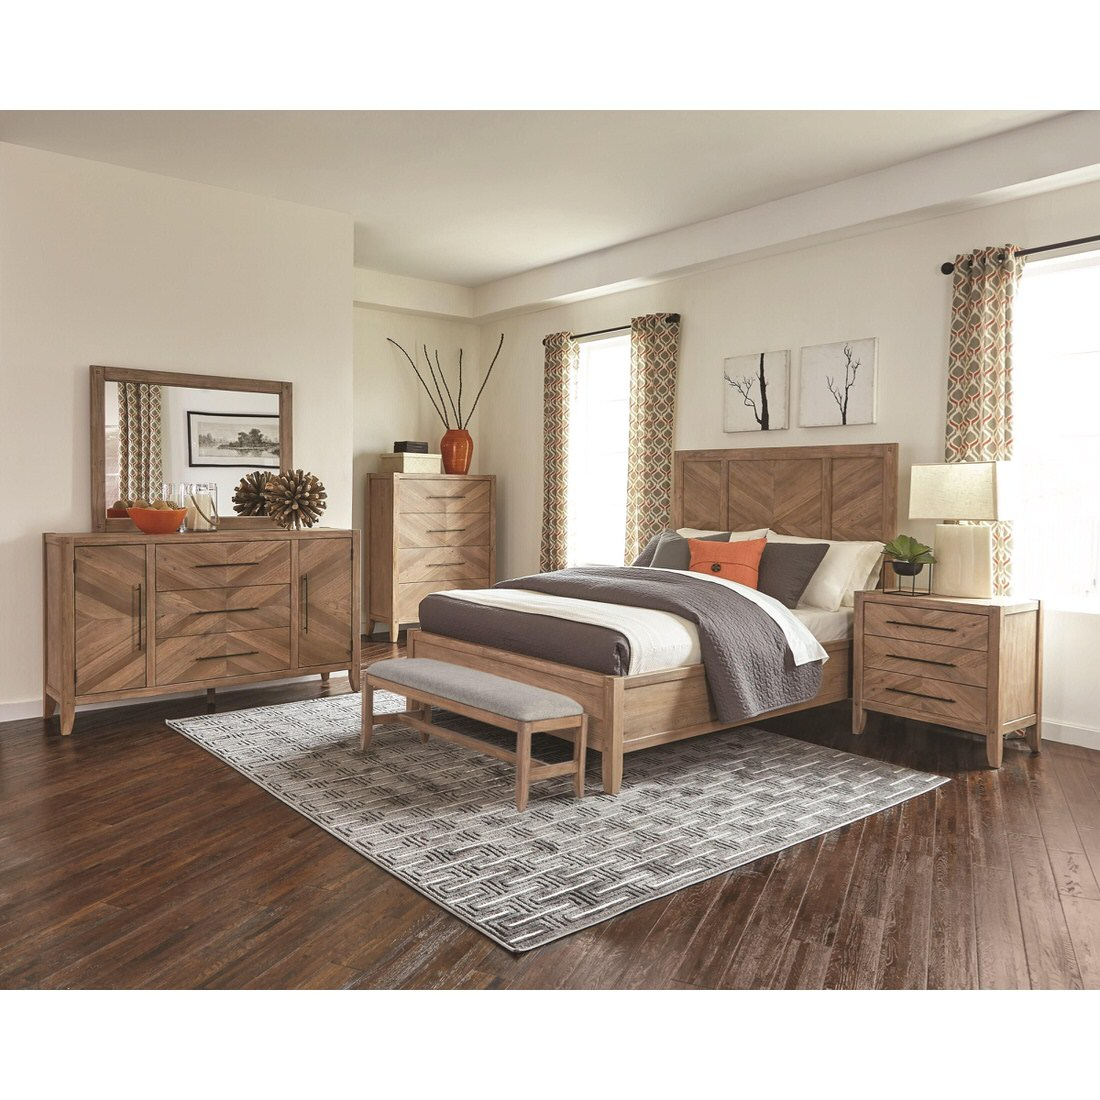 Coaster auburn bedroom collection